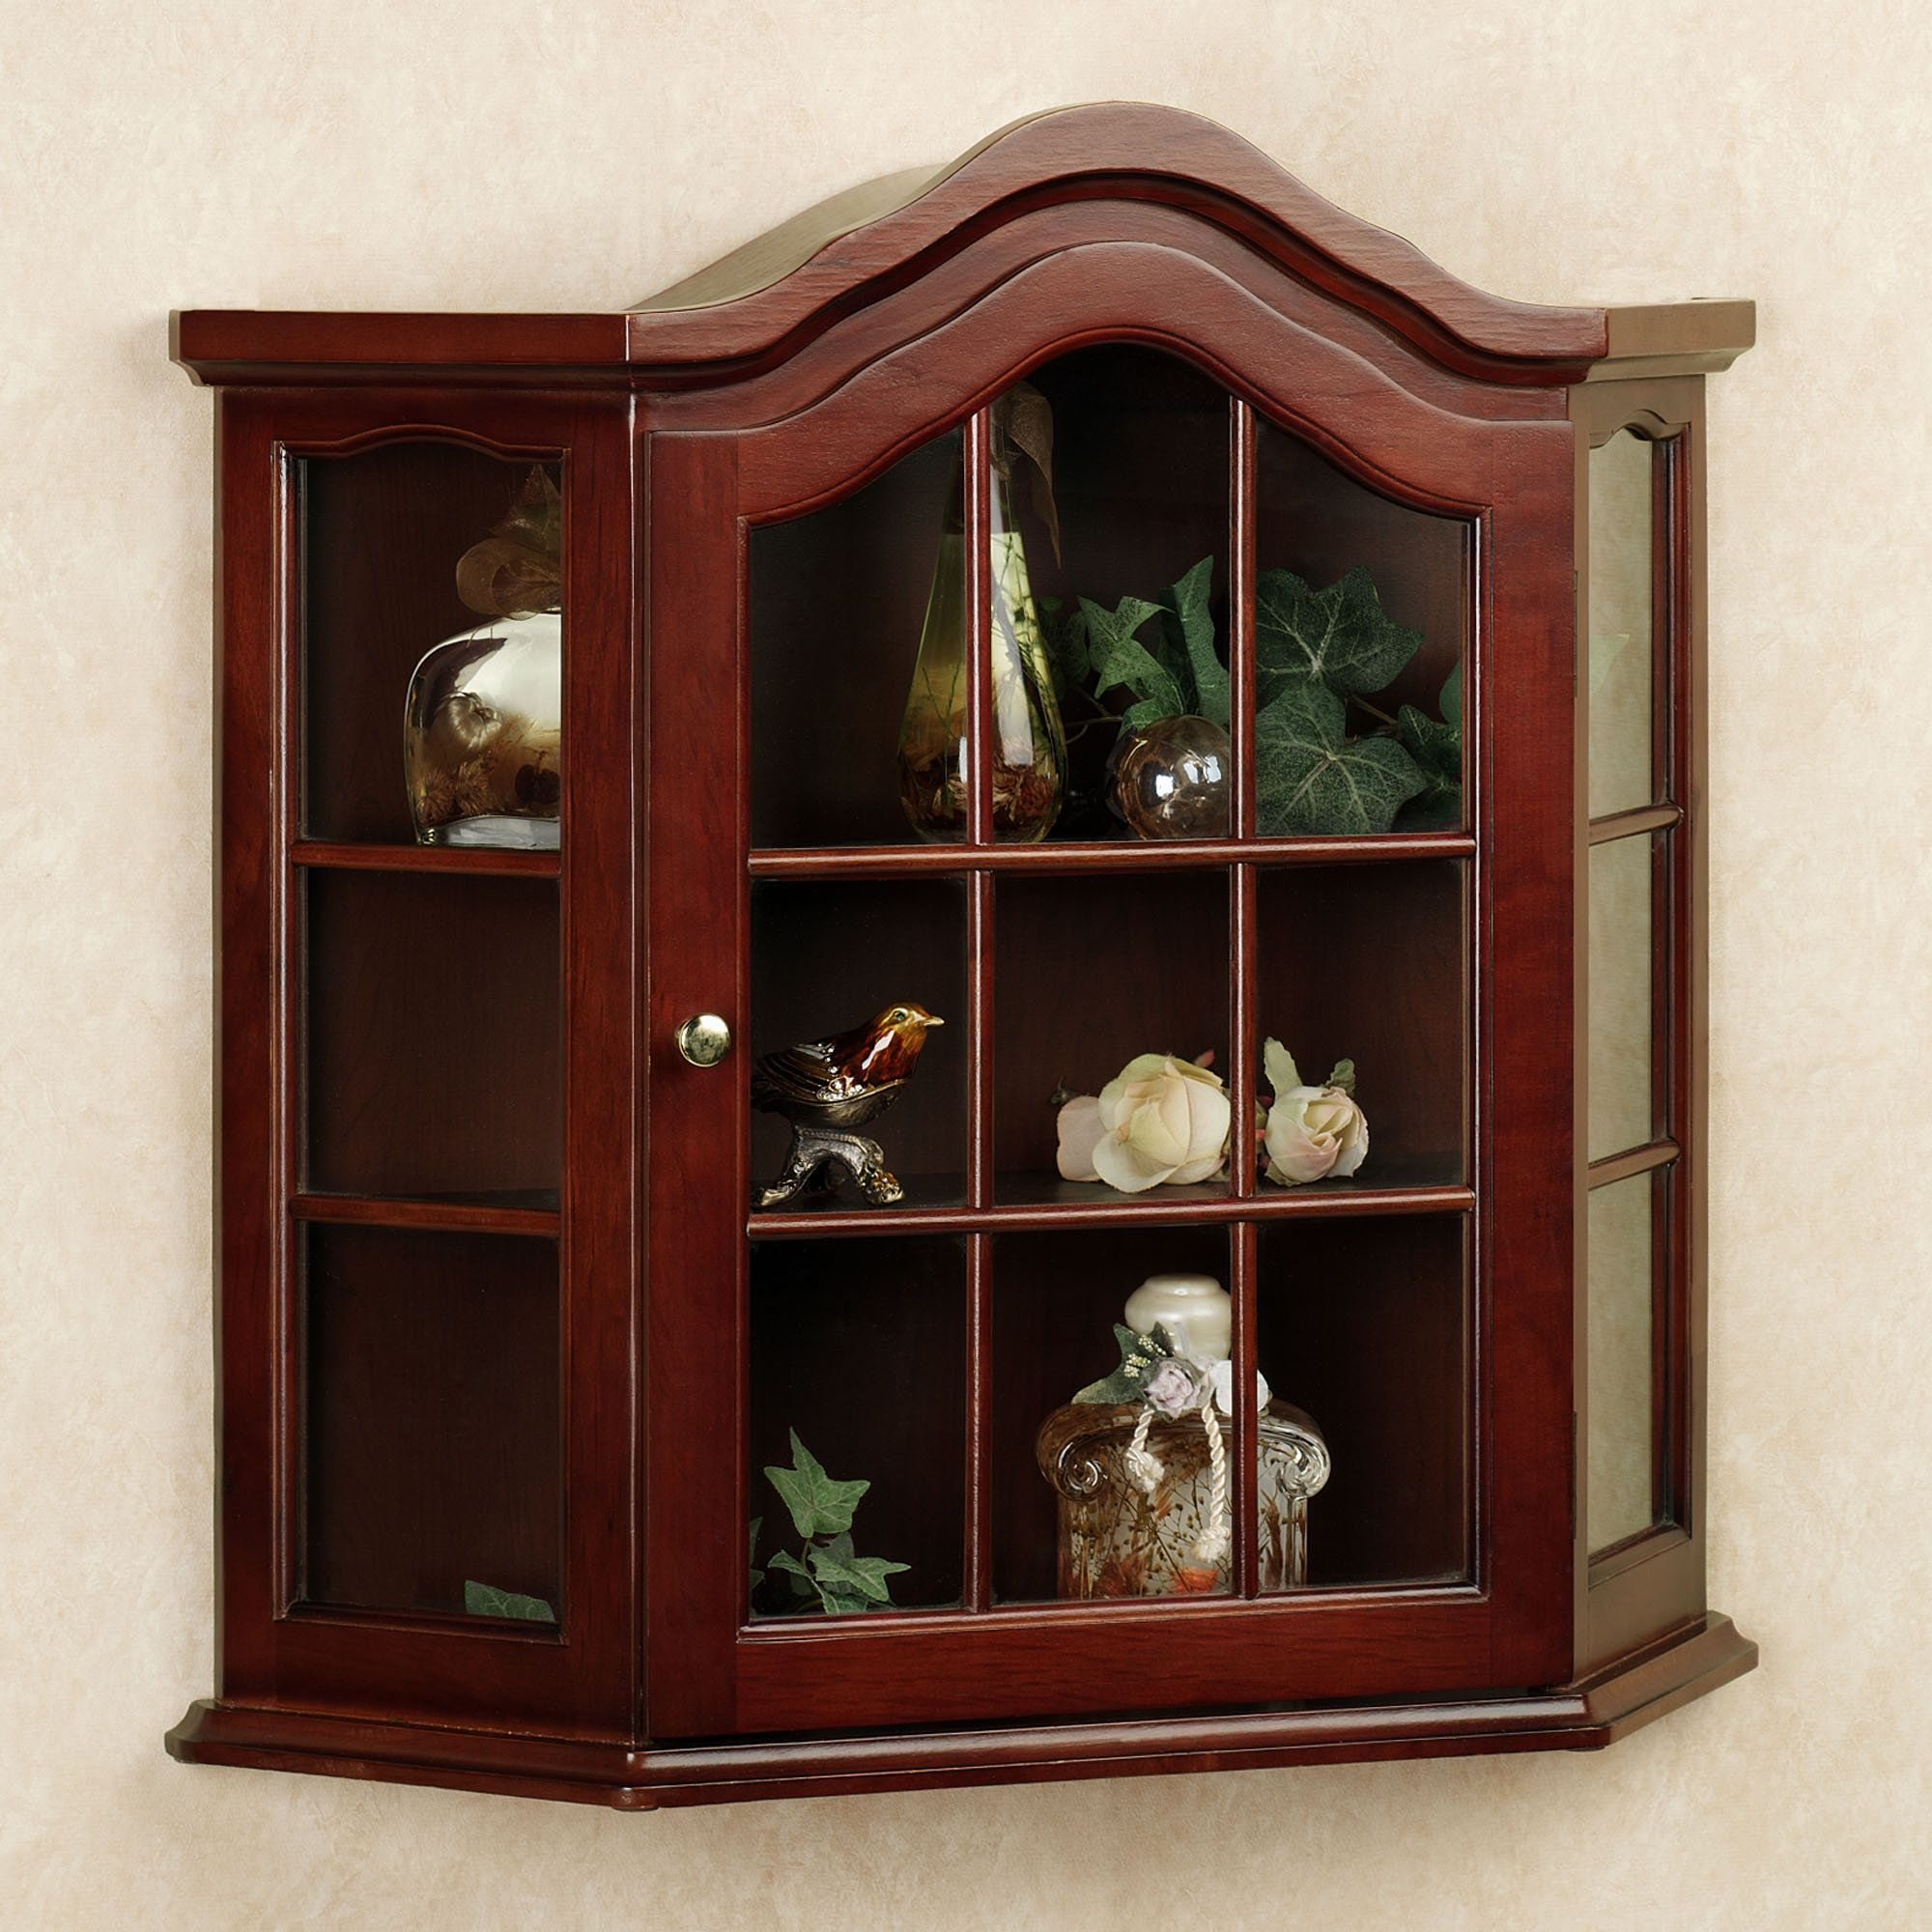 Aubrie Wall Curio Cabinet. Sandpiper and Sea Oats Wall Set Set of Two   Curio cabinets  Wall